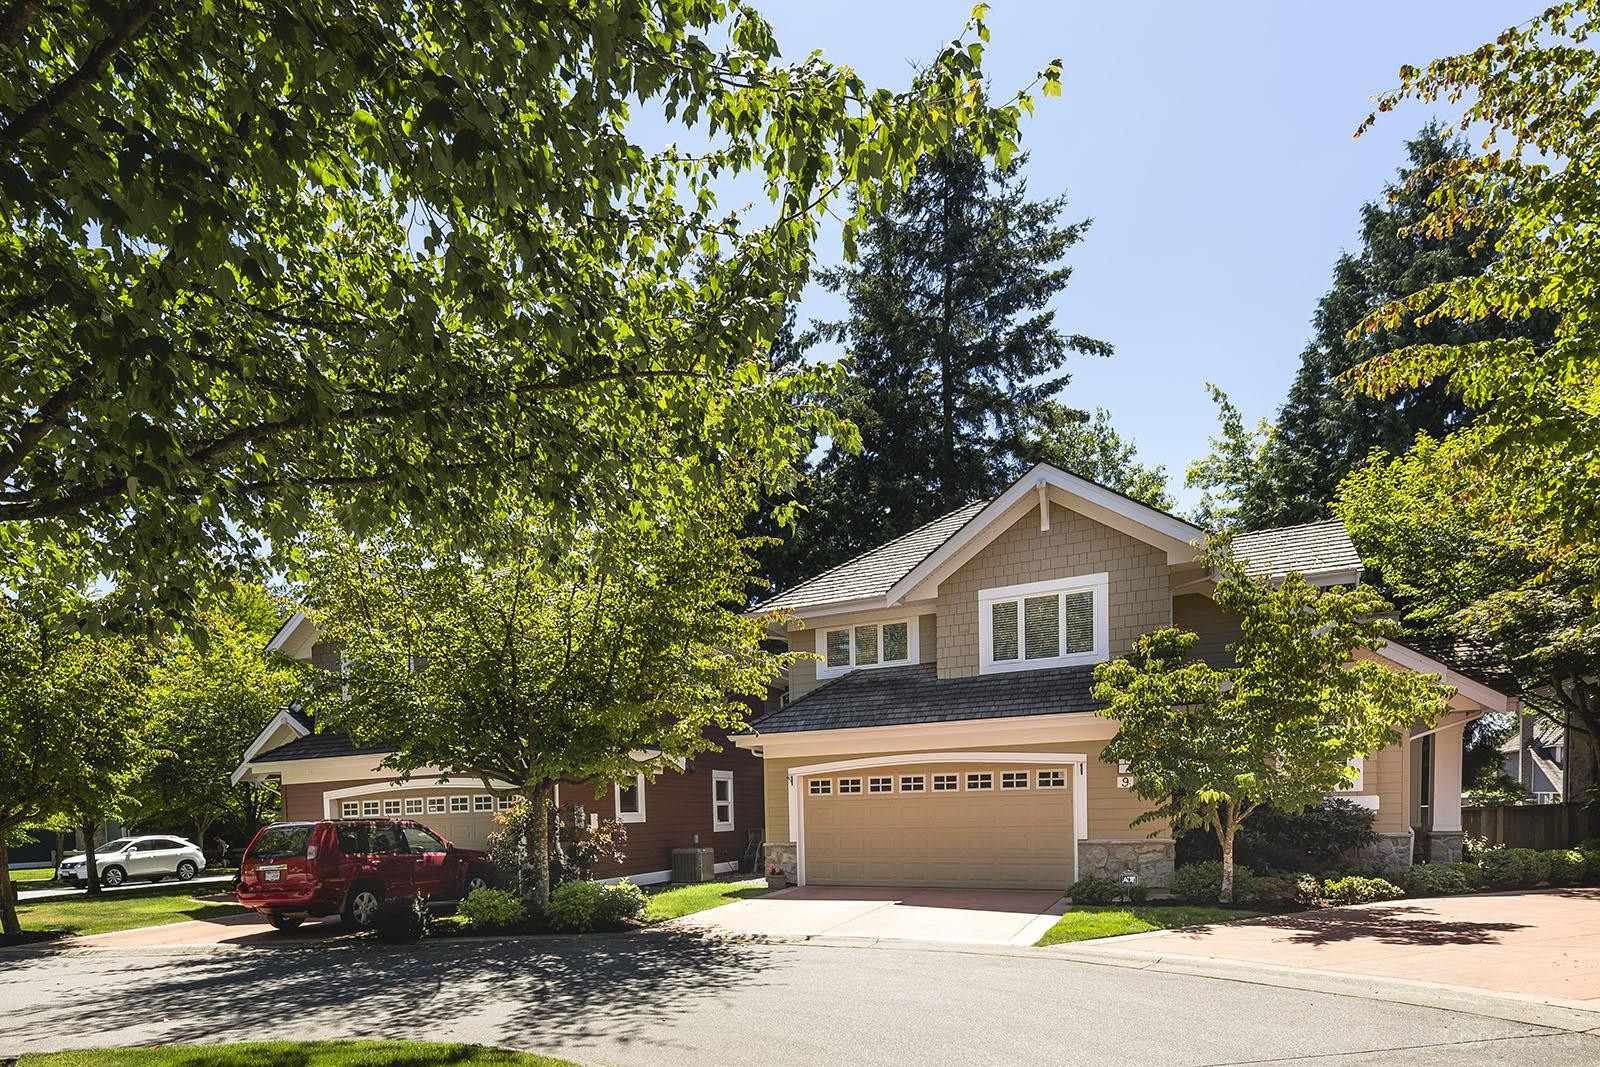 High Grove at 15055 20 Ave, Surrey 0